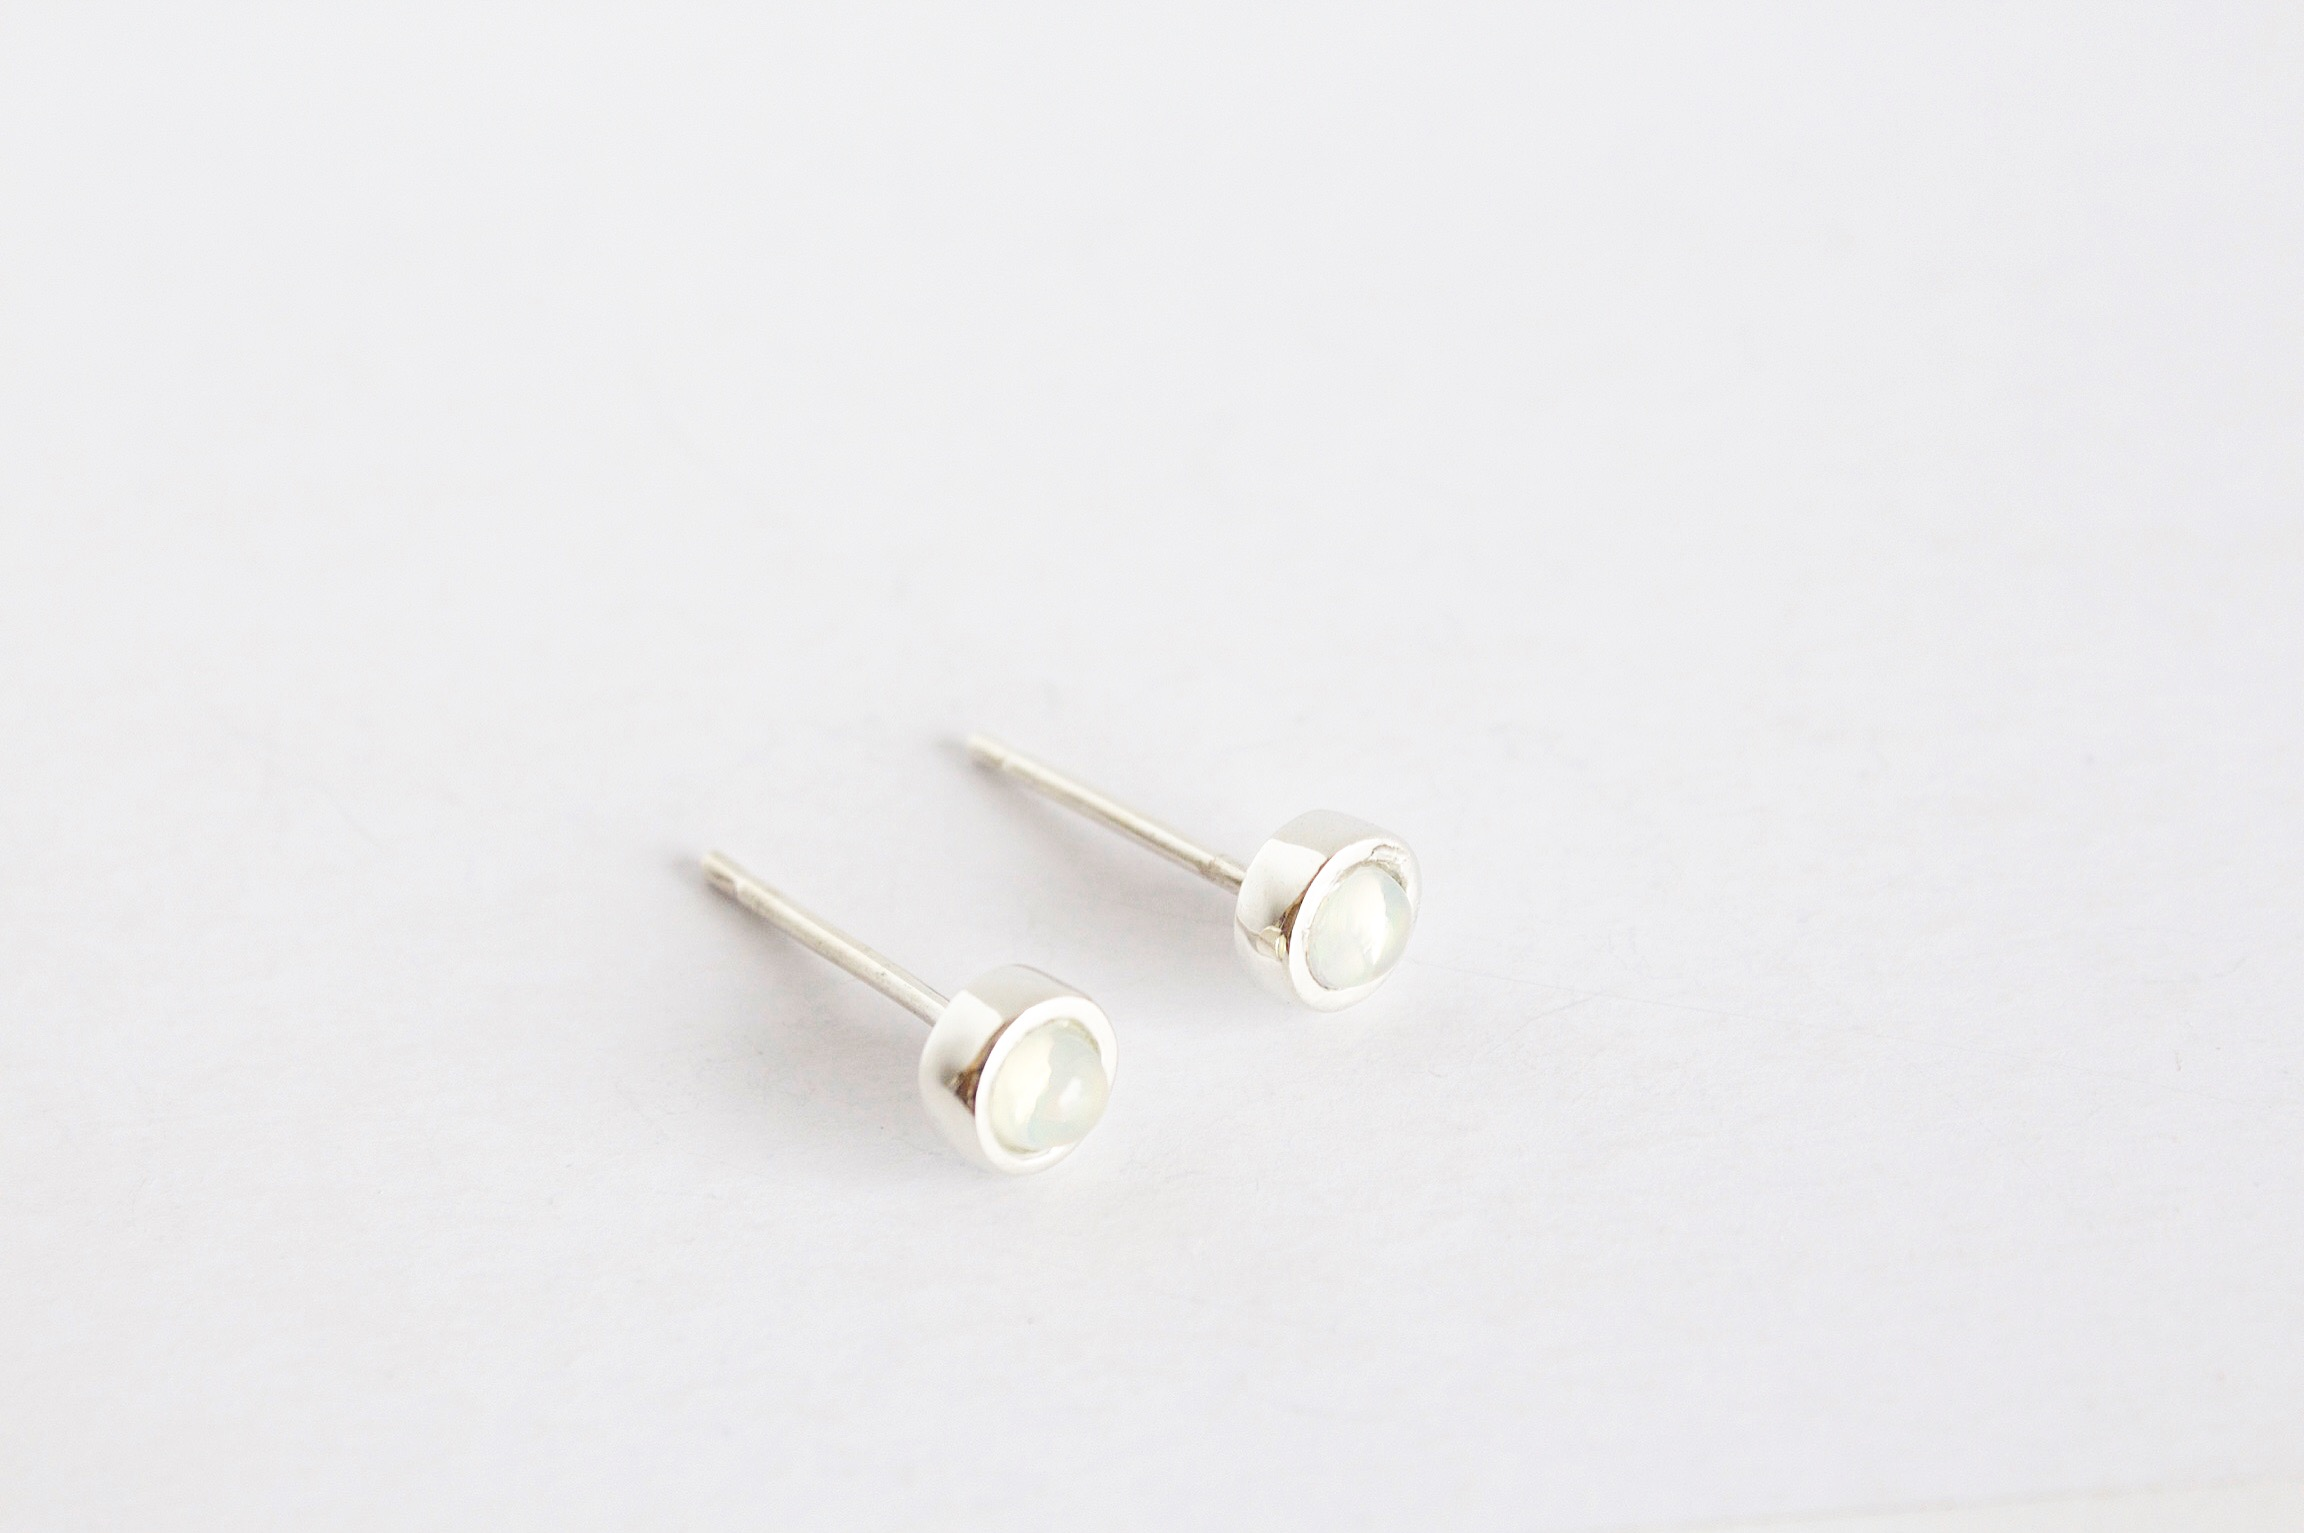 A luxe stud earring set with Opal